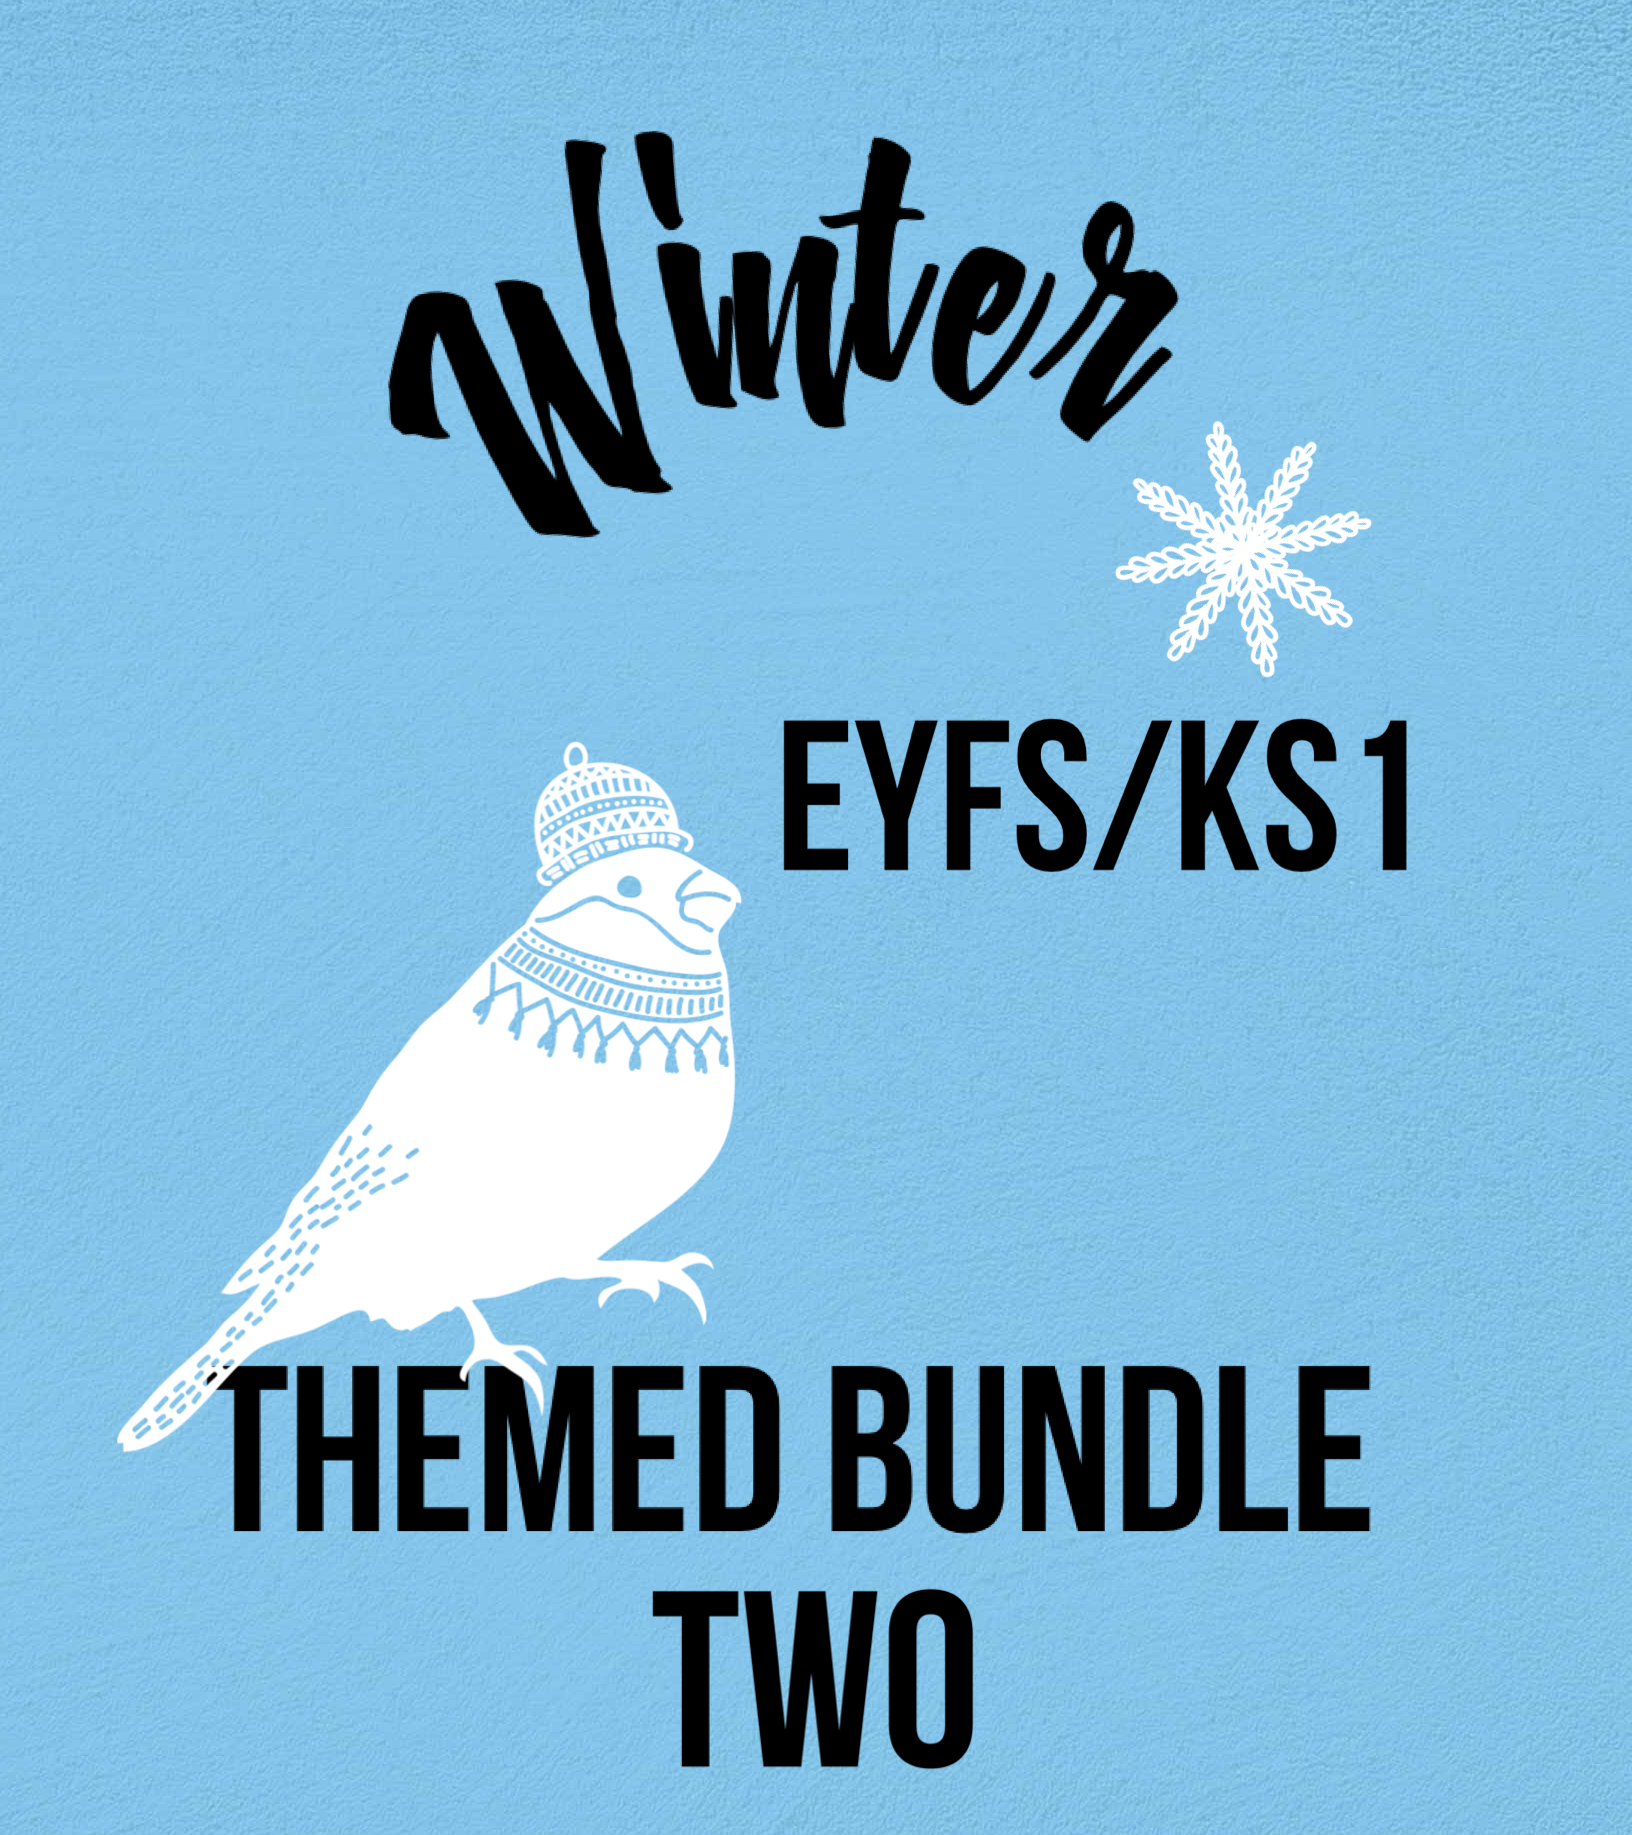 Winter Themed Bundle Pack Two for EYFS/KS1